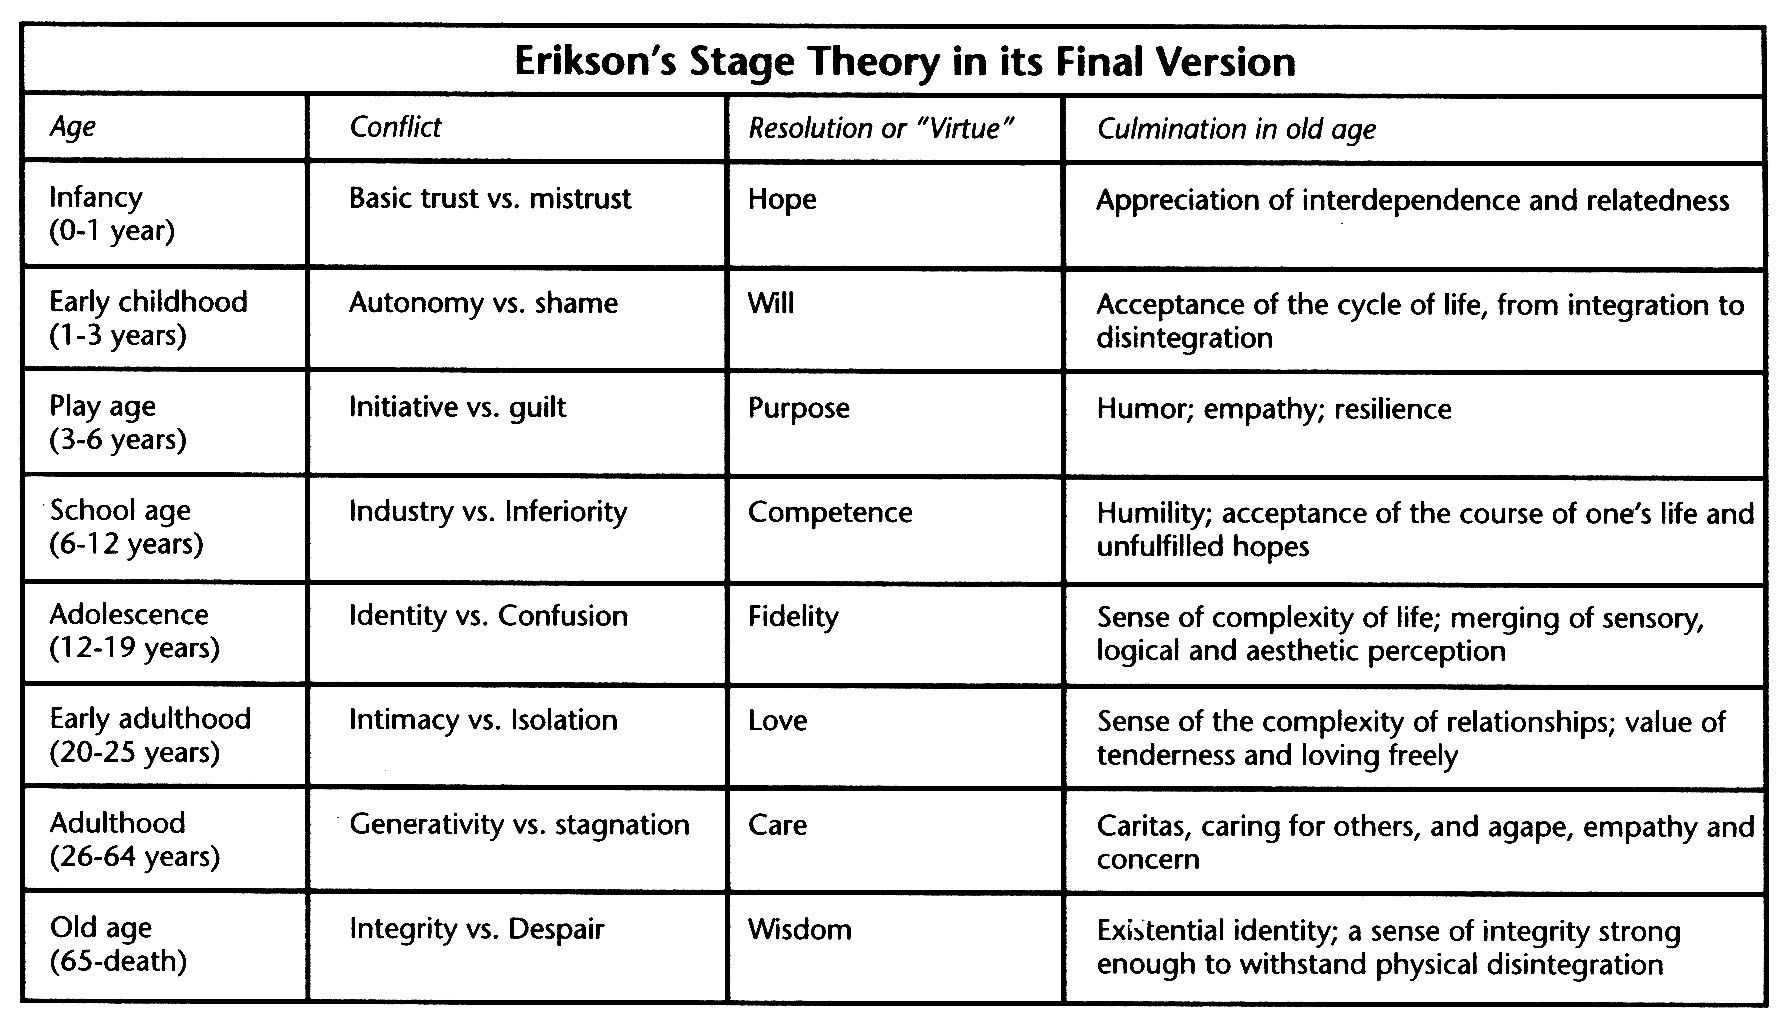 psychosocial development theory Psychosocial development the primary theory of psychosocial development was created by erik erikson, a german developmental psychologist erikson divided the process of psychological and social development into eight stages that correspond to the stages of physical development.